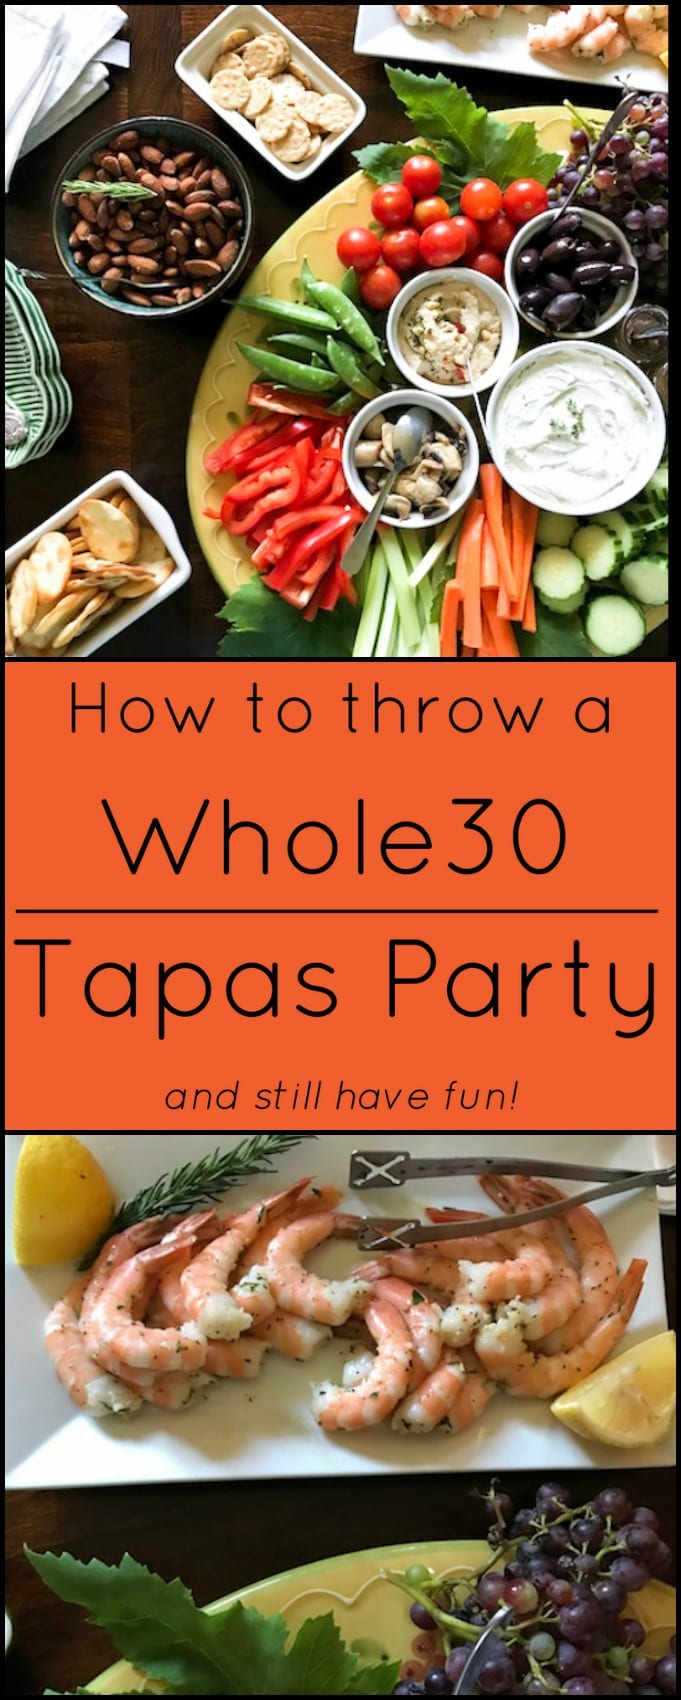 How to throw a Whole30 party...(and still have fun!)